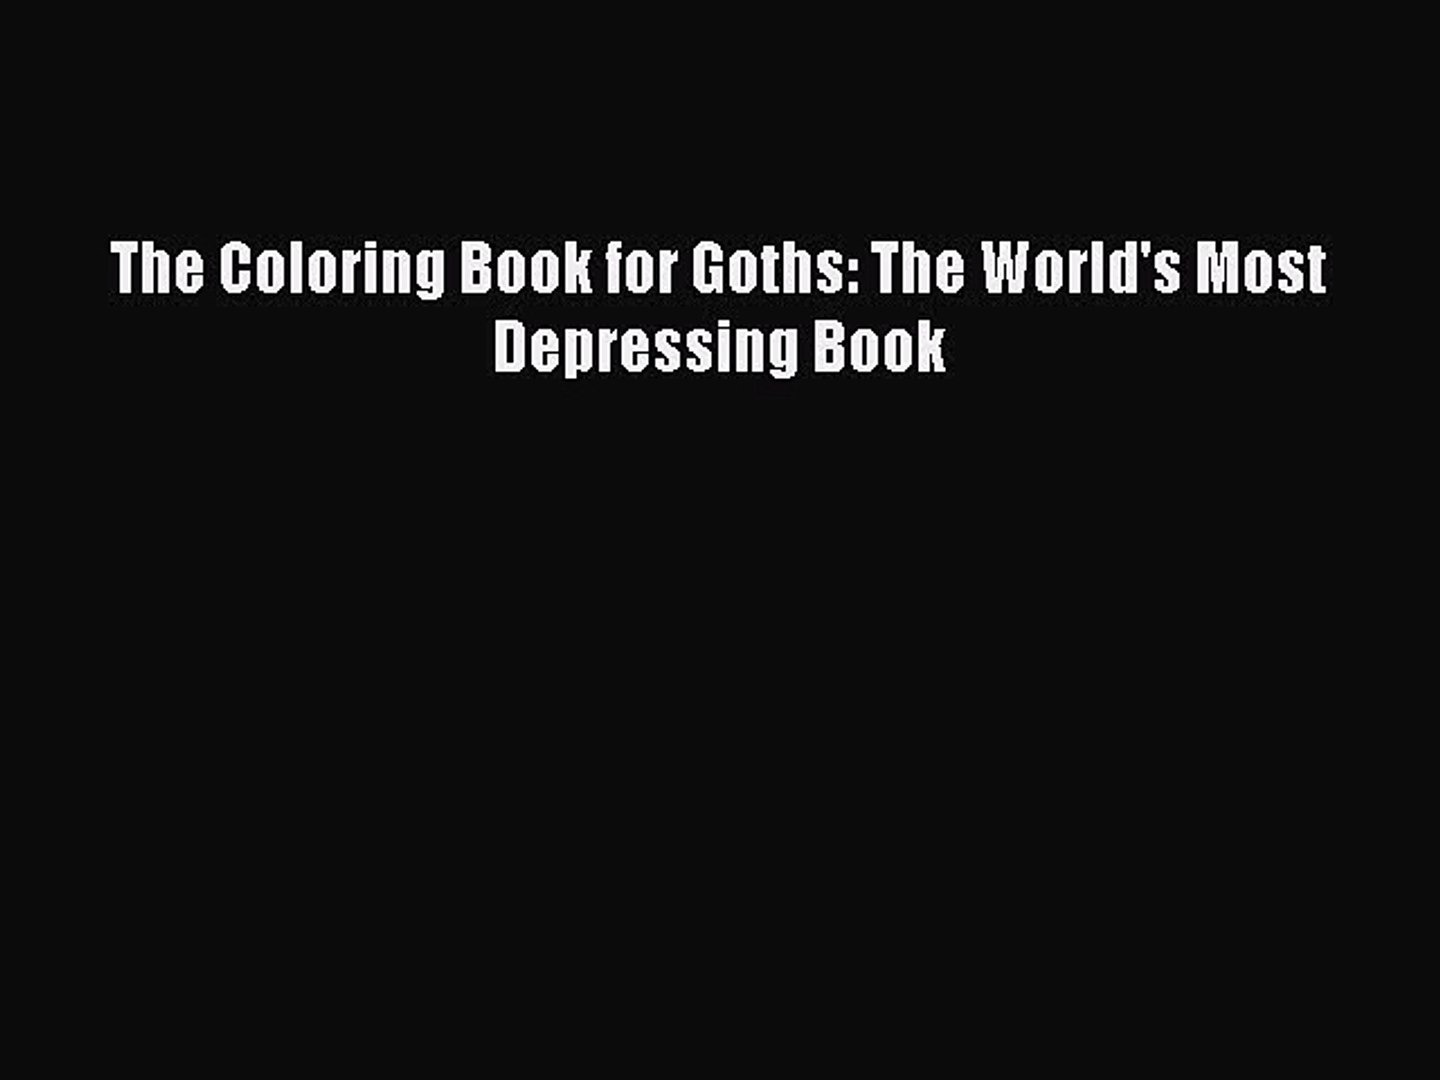 Pdf The Coloring Book For Goths  The World's Most Depressing Book